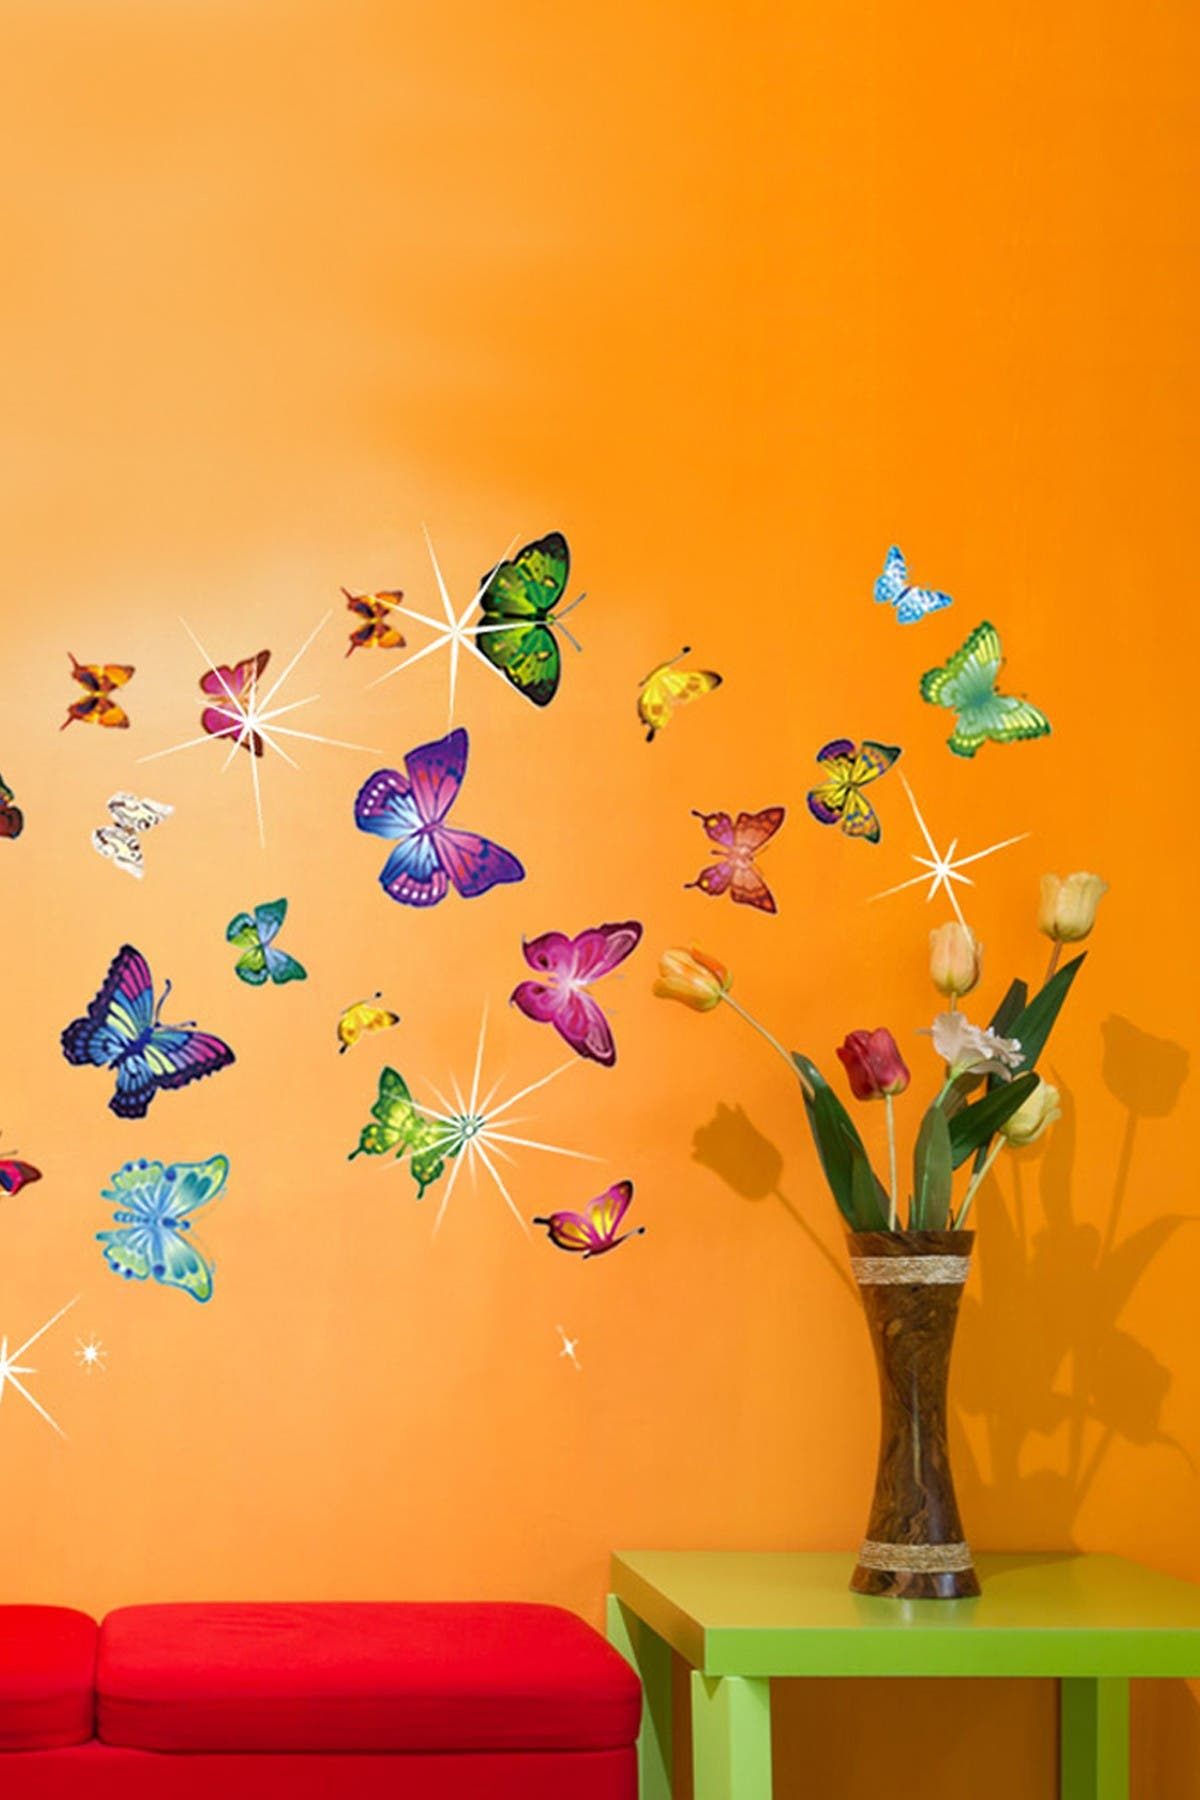 Image of WalPlus Multi Wall Sticker Decal Colorful Butterflies with Swarovski Crystal Embellishments